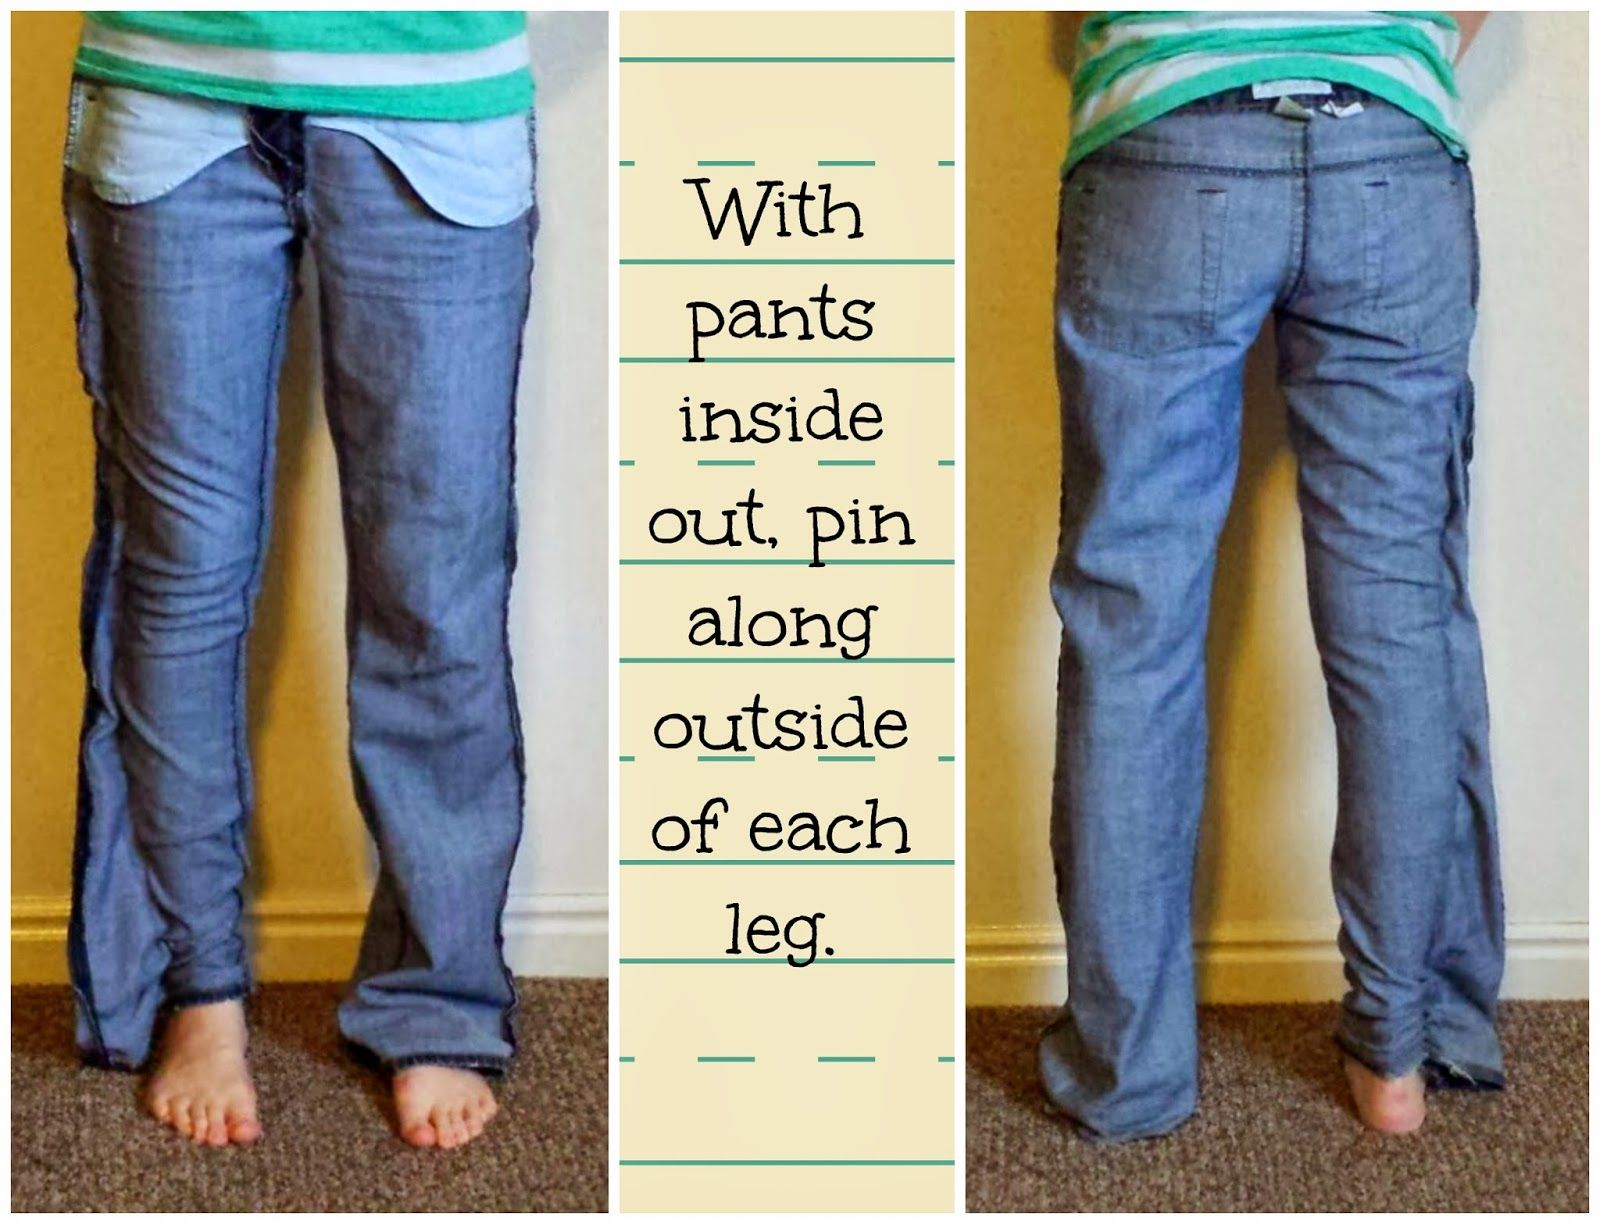 Give Your Old Jeans a Skinny Jean Makeover! Tutorial by Everything Springer A to Z